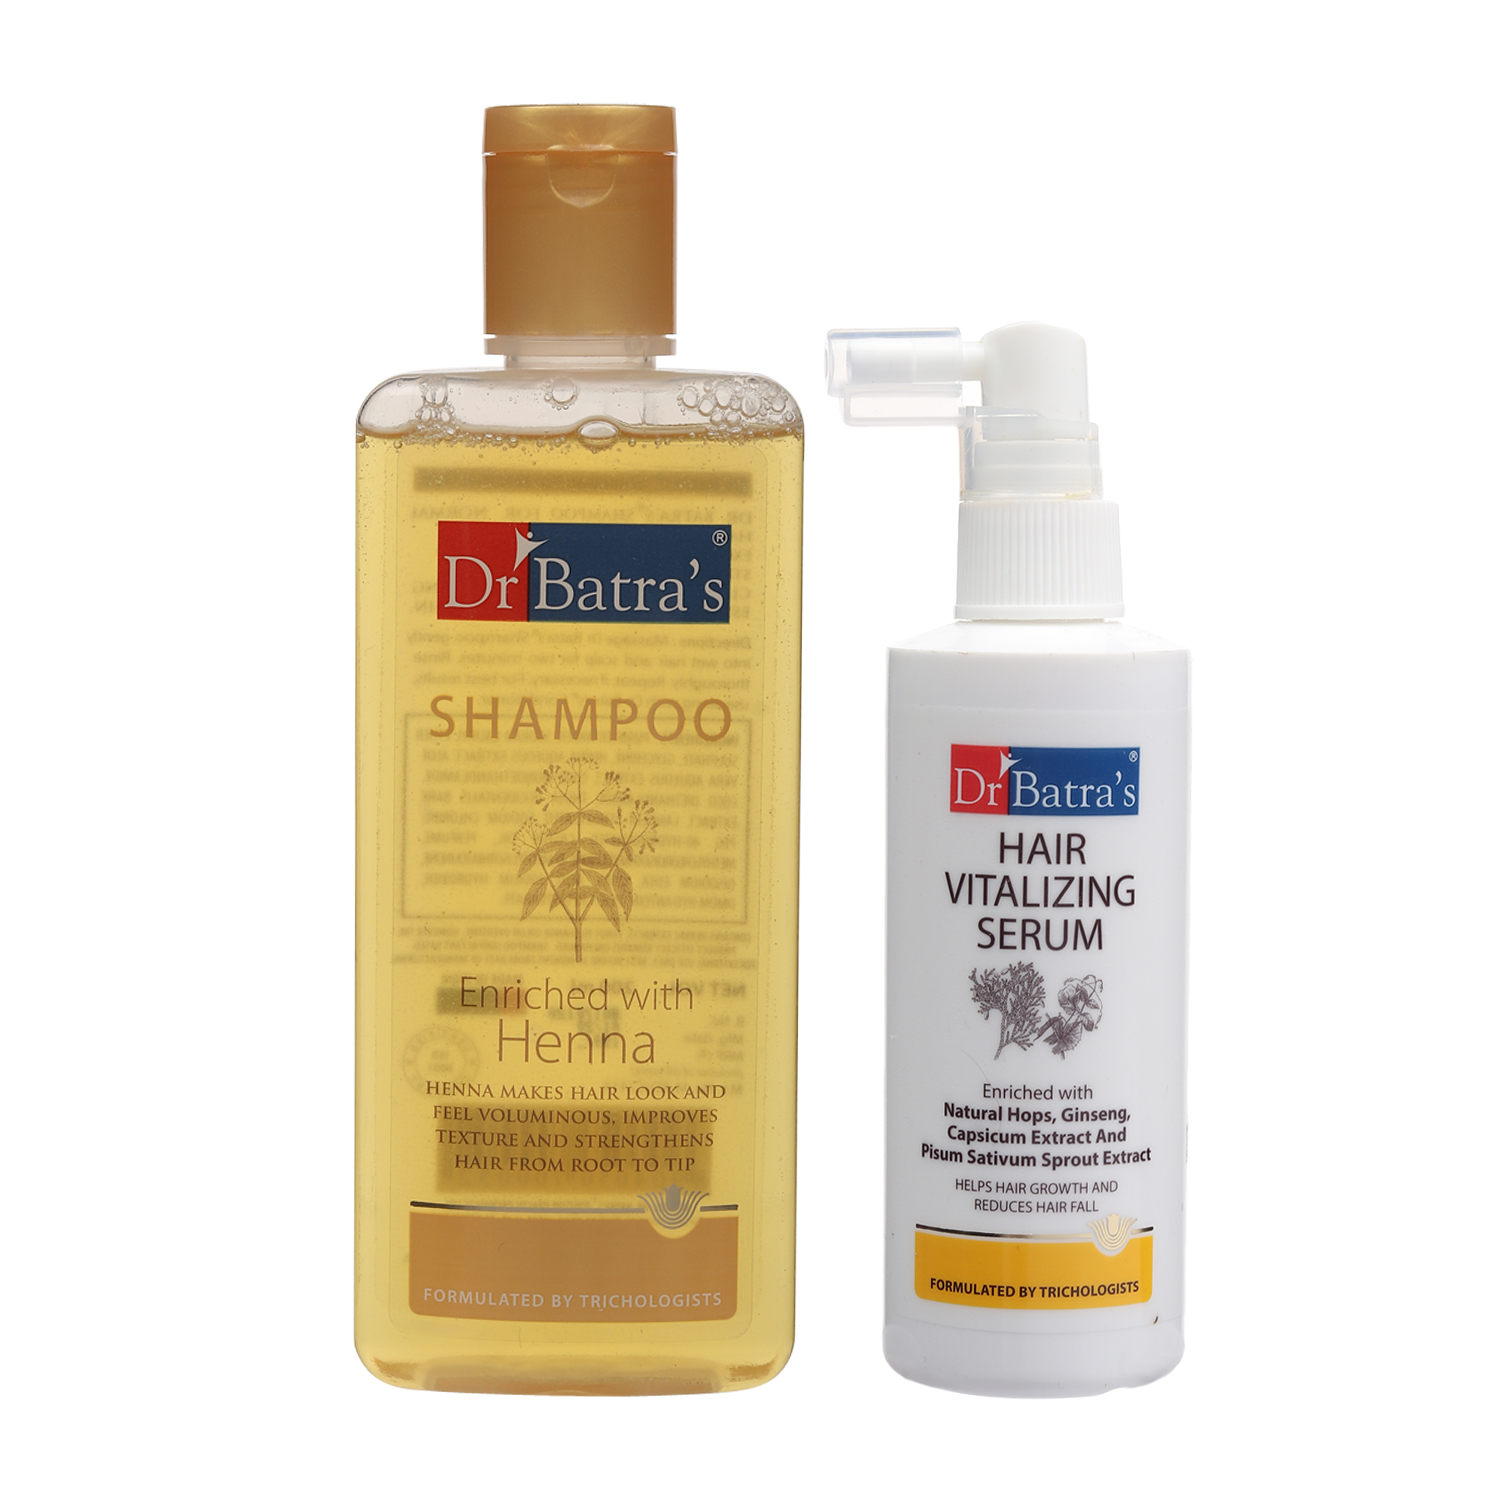 Dr Batra's | Dr Batra's Normal Shampoo 200ml and Hair Vitalizing Serum 125 ml (Pack of 2 Men and Women)